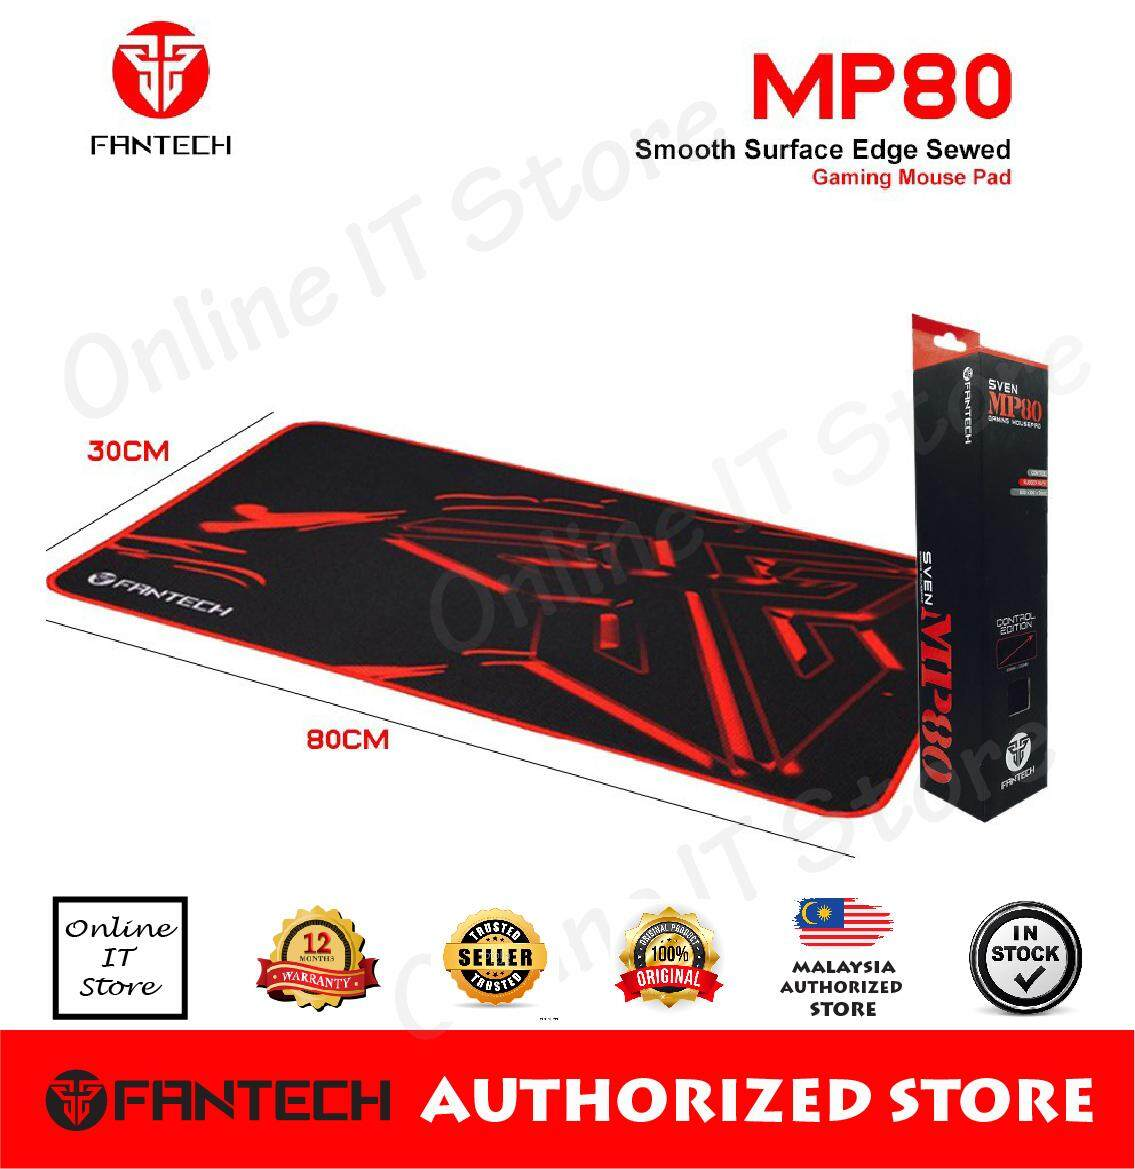 Fantech Gaming Mouse Pad SVEN MP80 High Non-Slip Base  with Edge Sewed 80cm x 30cm Malaysia